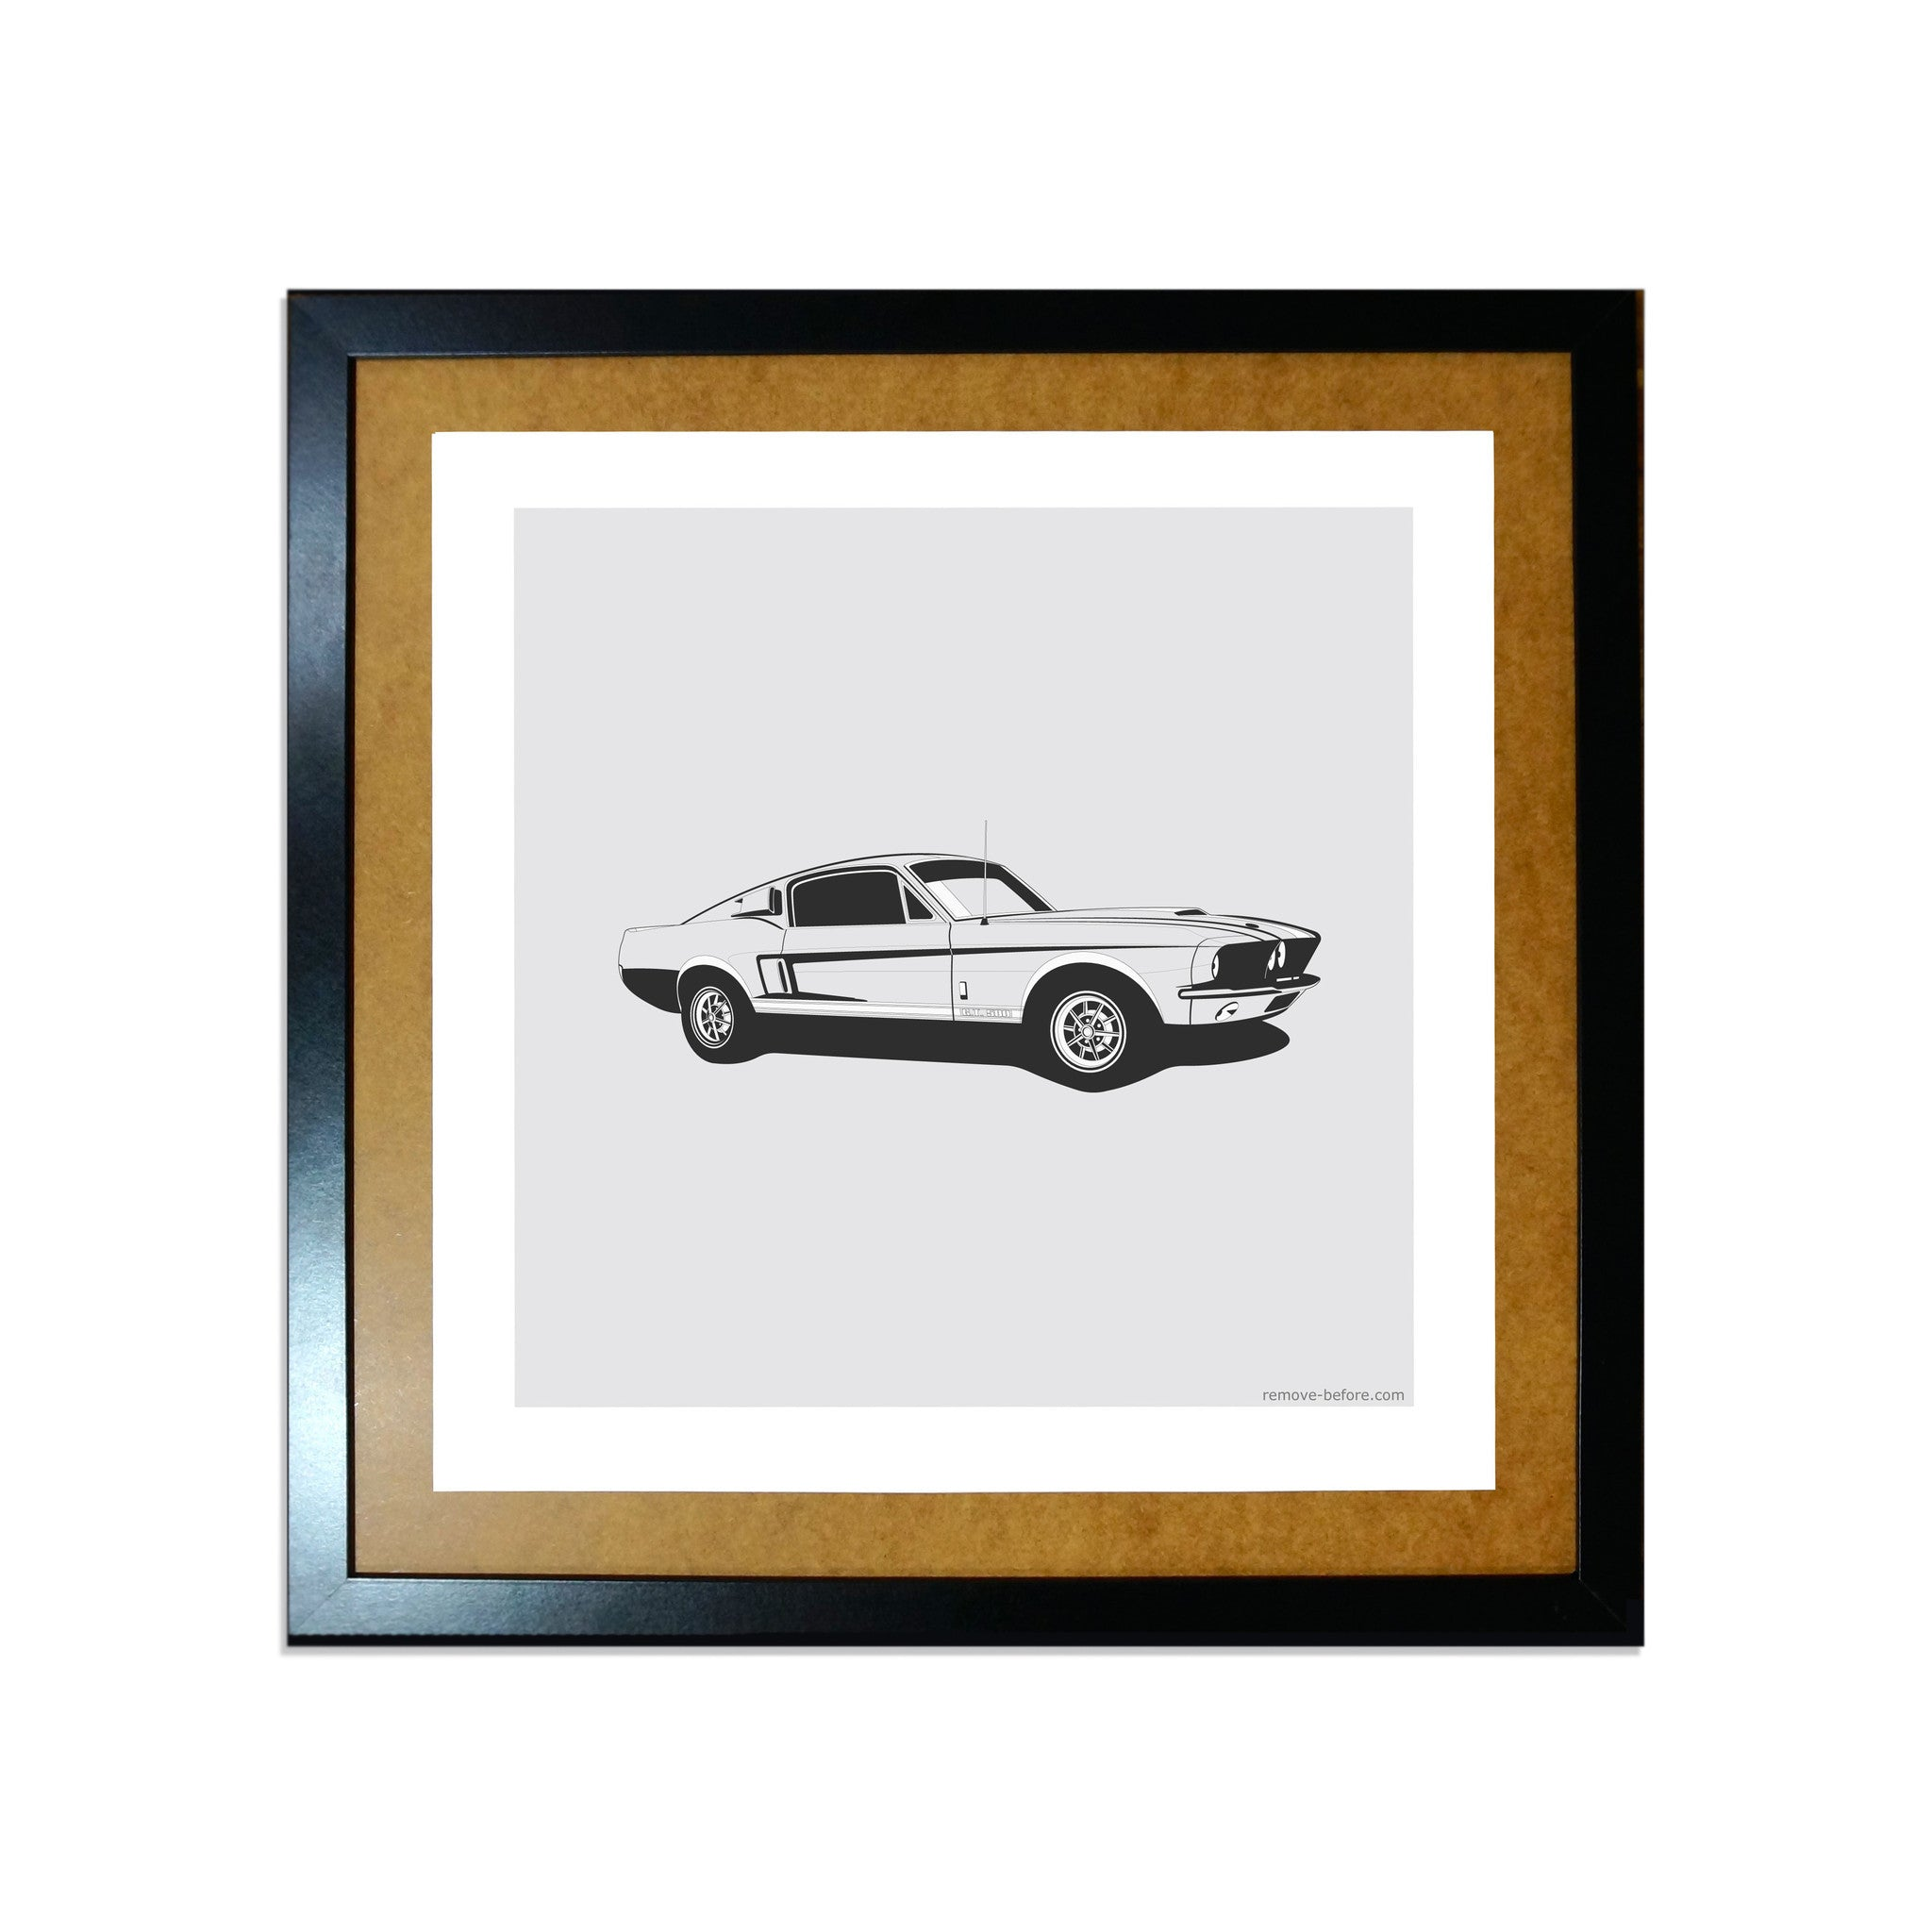 Remove-Before Limited Edition Classic Car Print - Shelby GT 500 Car Artwork